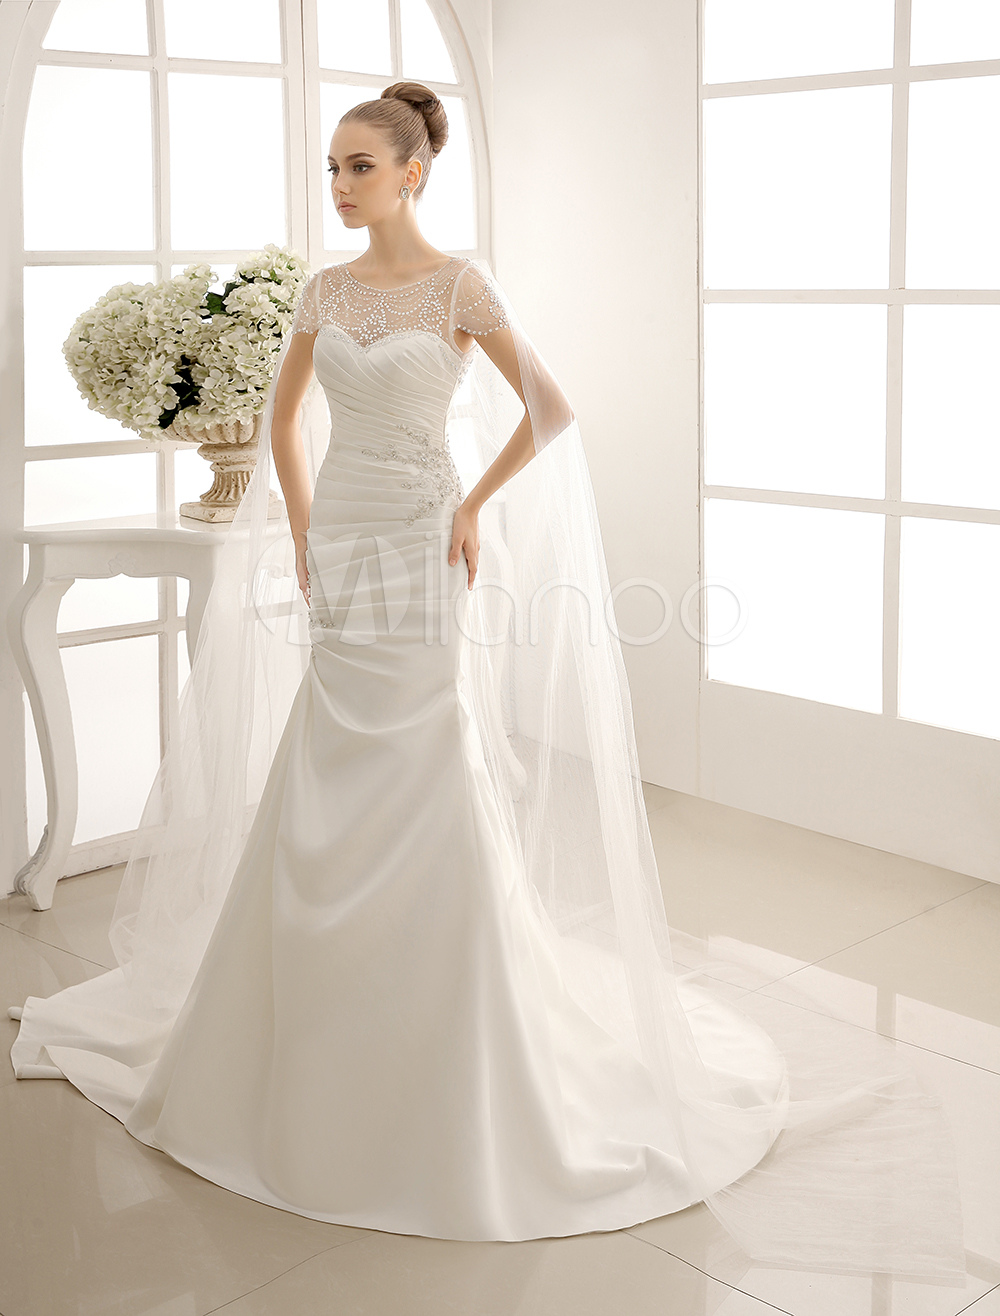 exquisite beaded sheer neckline short sleeve wedding dress with translucent detachable cape milanoo p wedding dress with cape Exquisite Beaded Sheer Neckline Short Sleeve Wedding Dress with Translucent Detachable Cape Milanoo Milanoo com